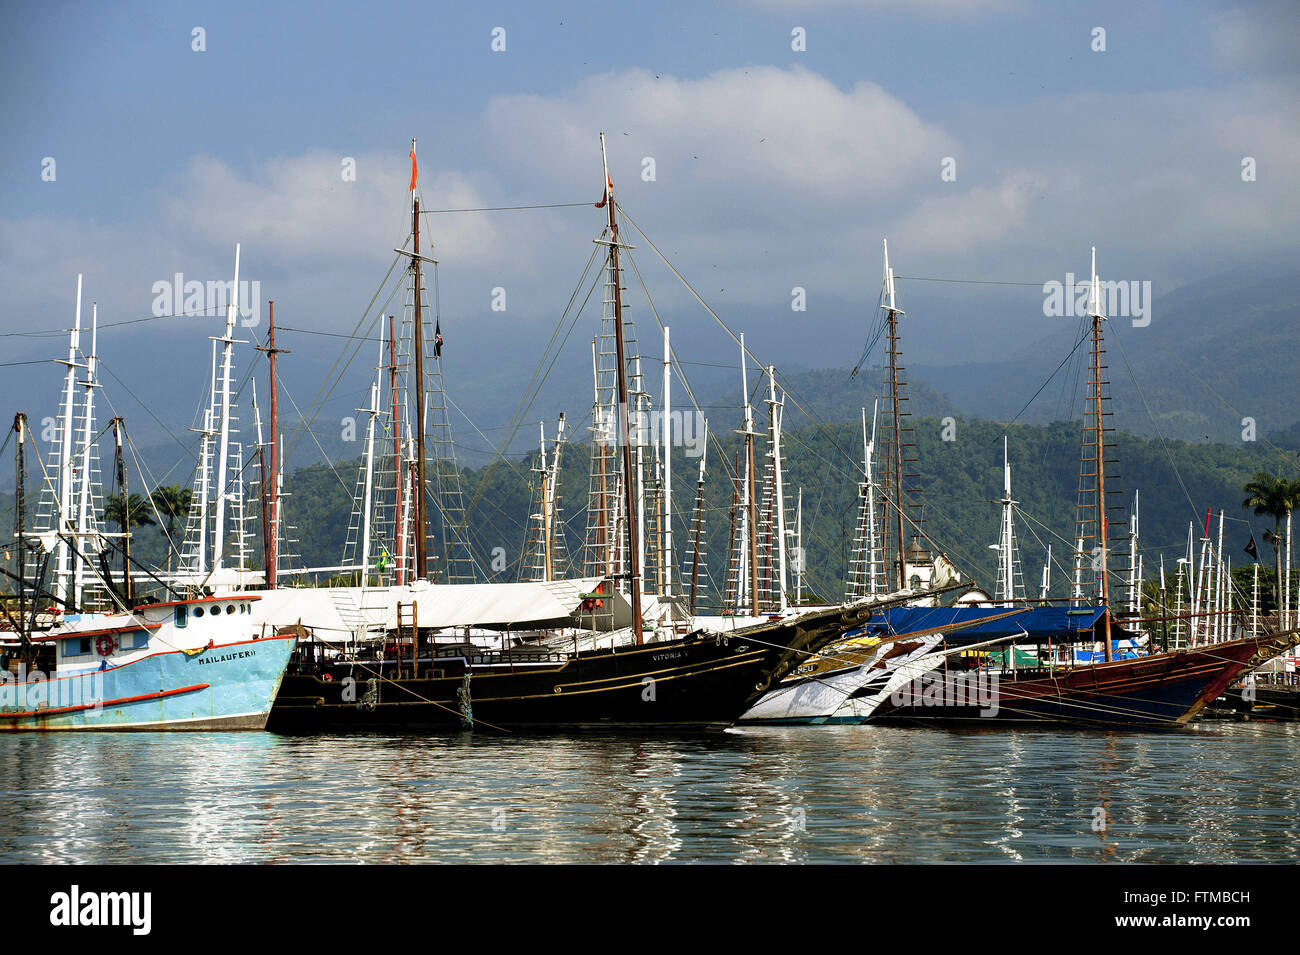 Detail of boats anchored in the bay of the historical city of Parati - Stock Image